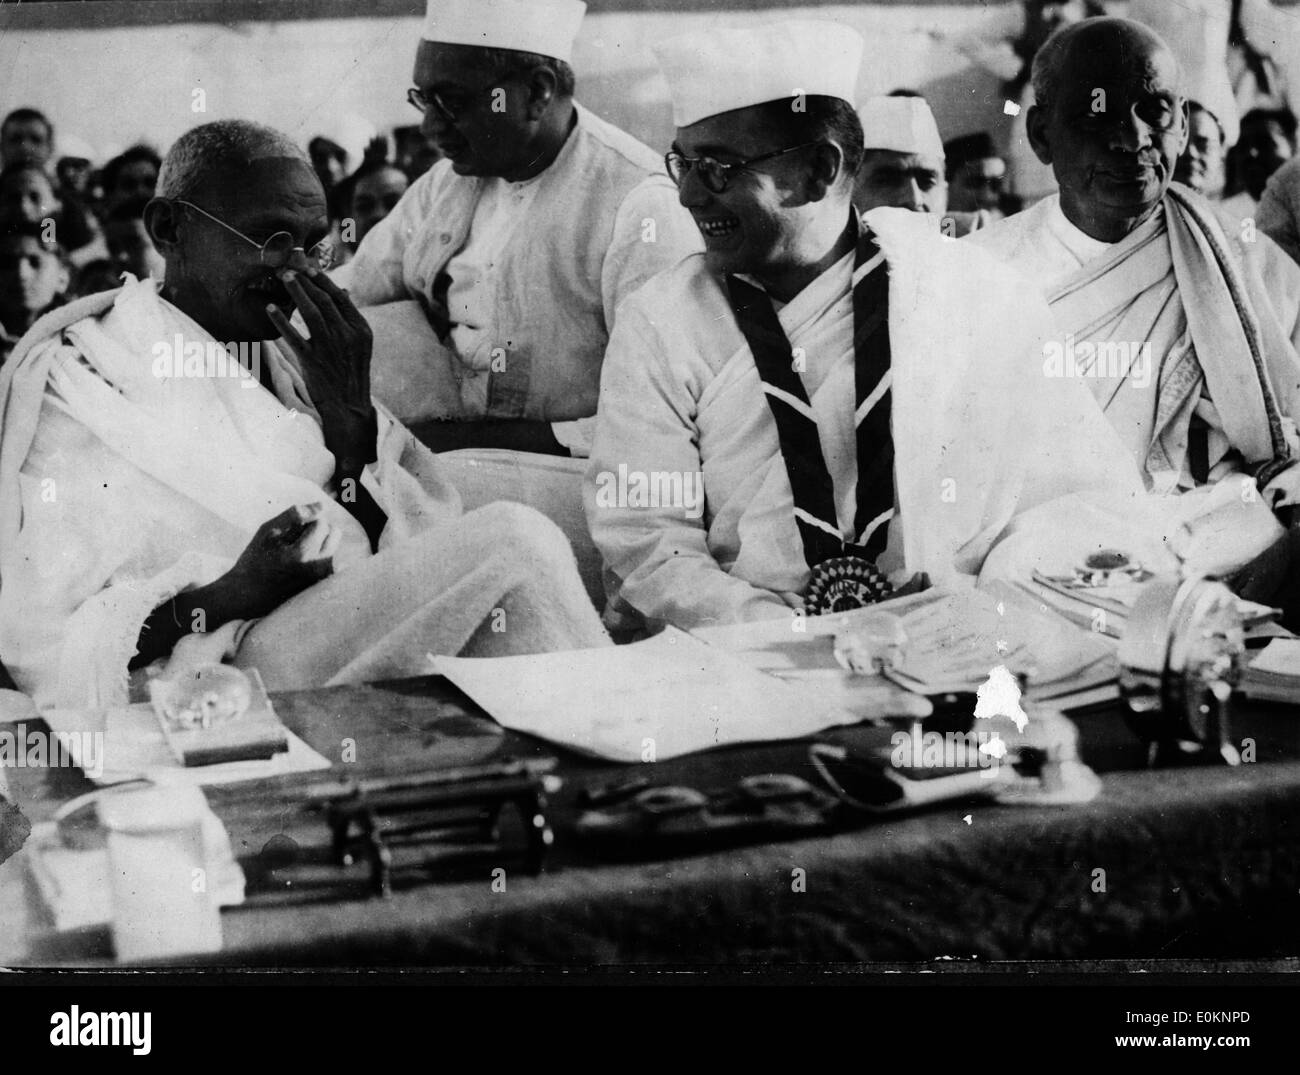 Mahatma Gandhi at the 51st Indian National Congress - Stock Image